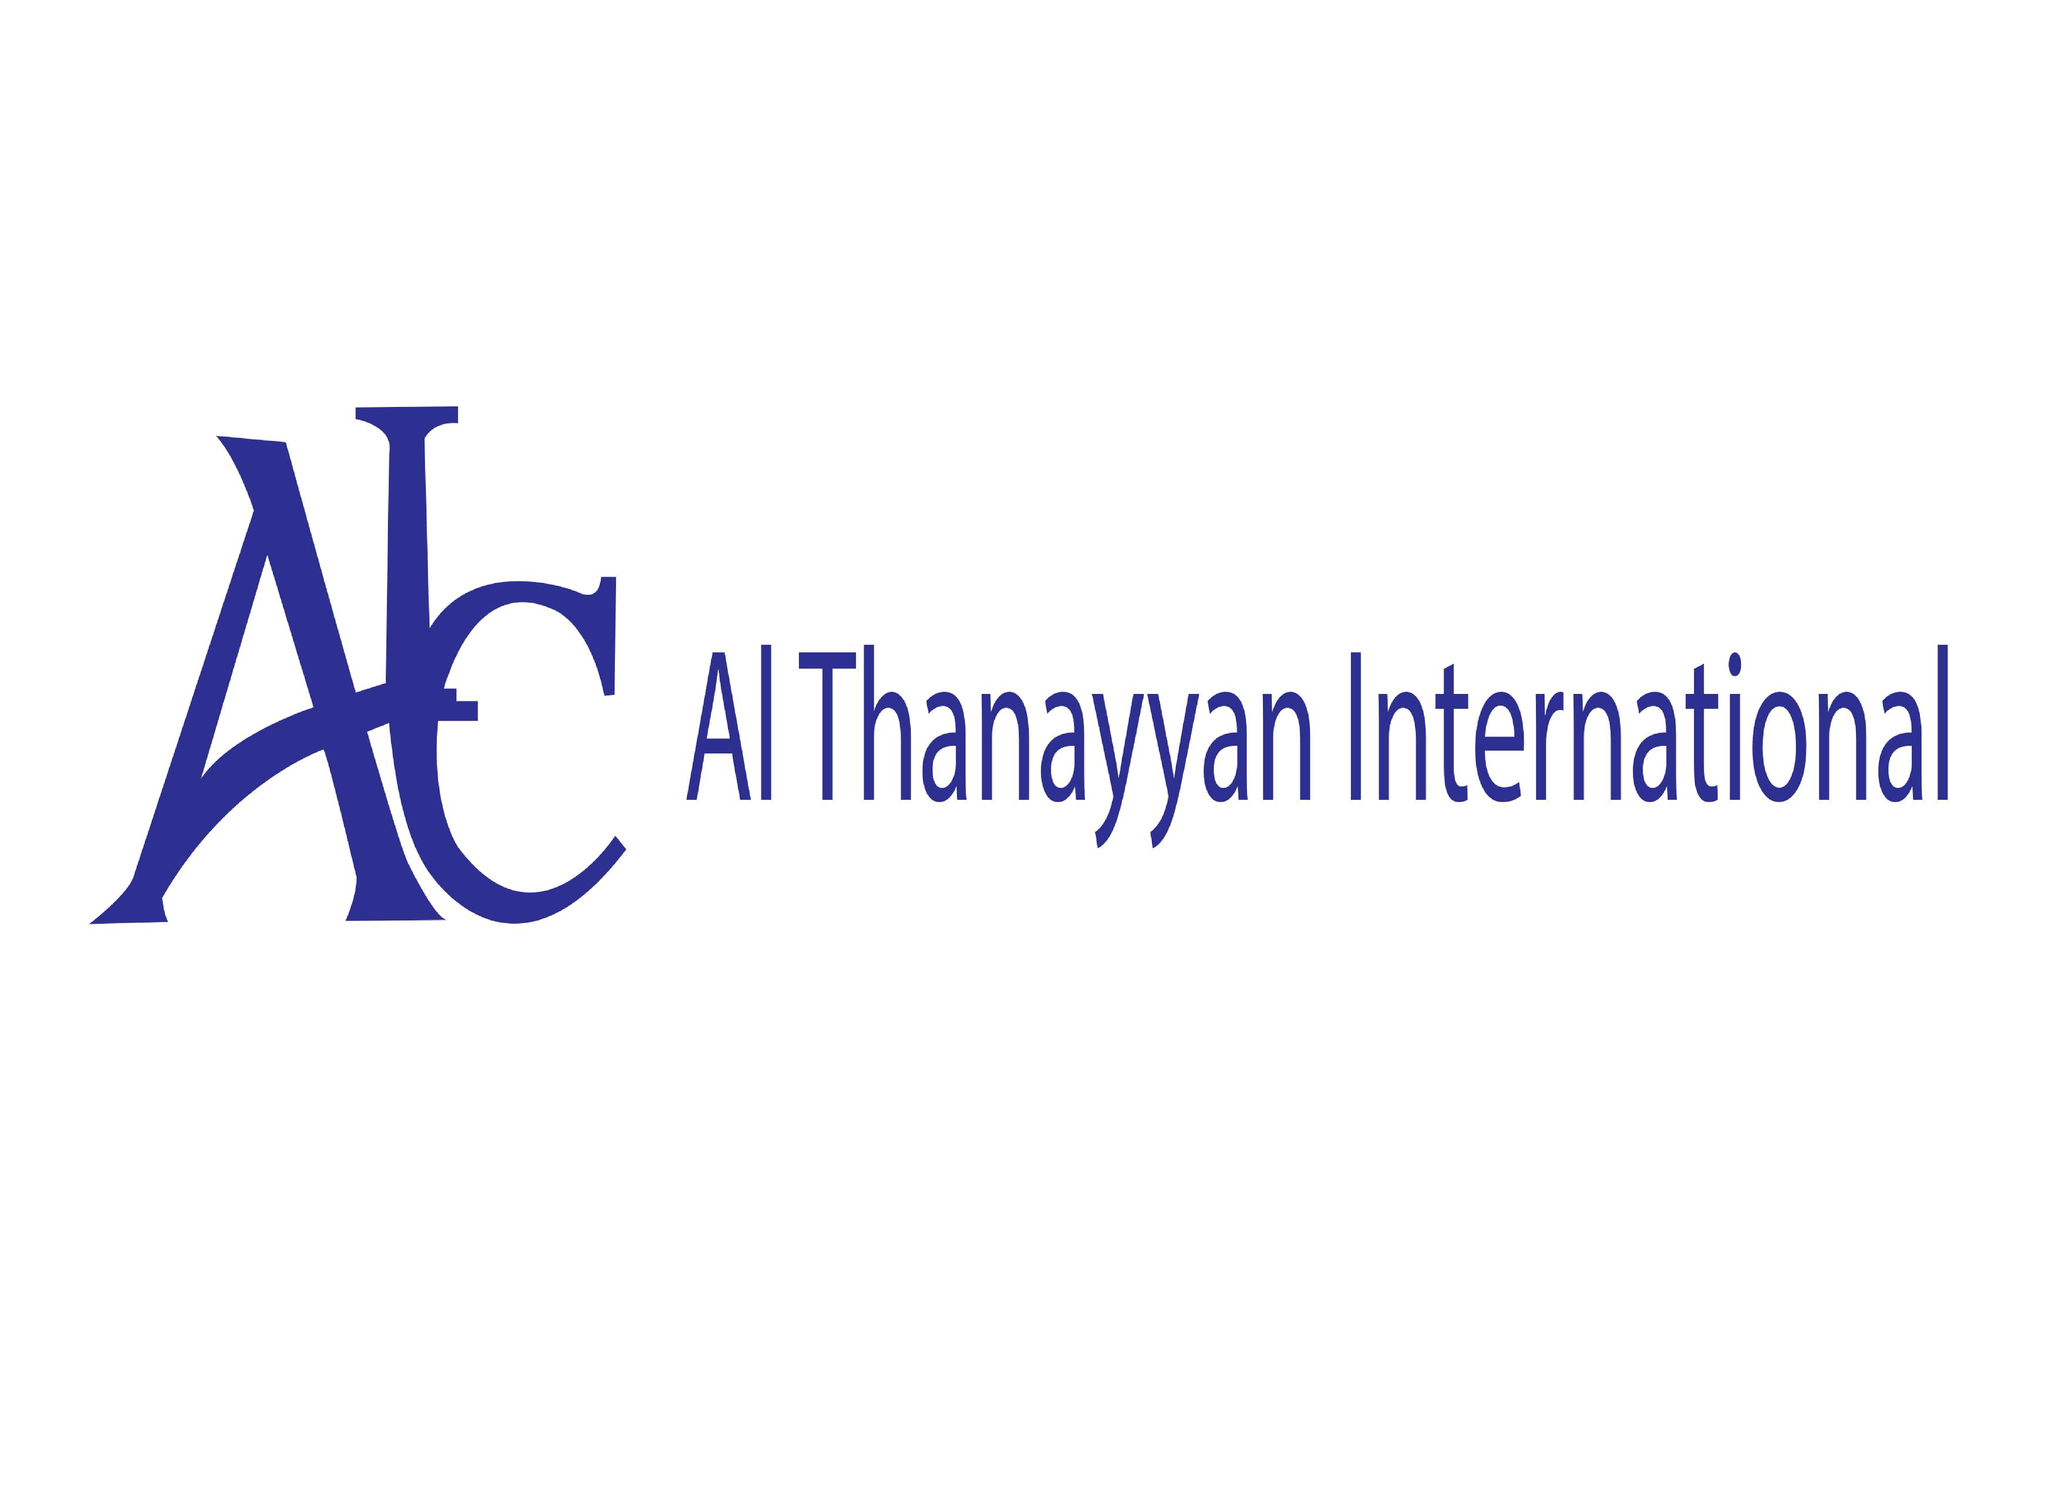 AL Thanayyan International One Person Company FZCO